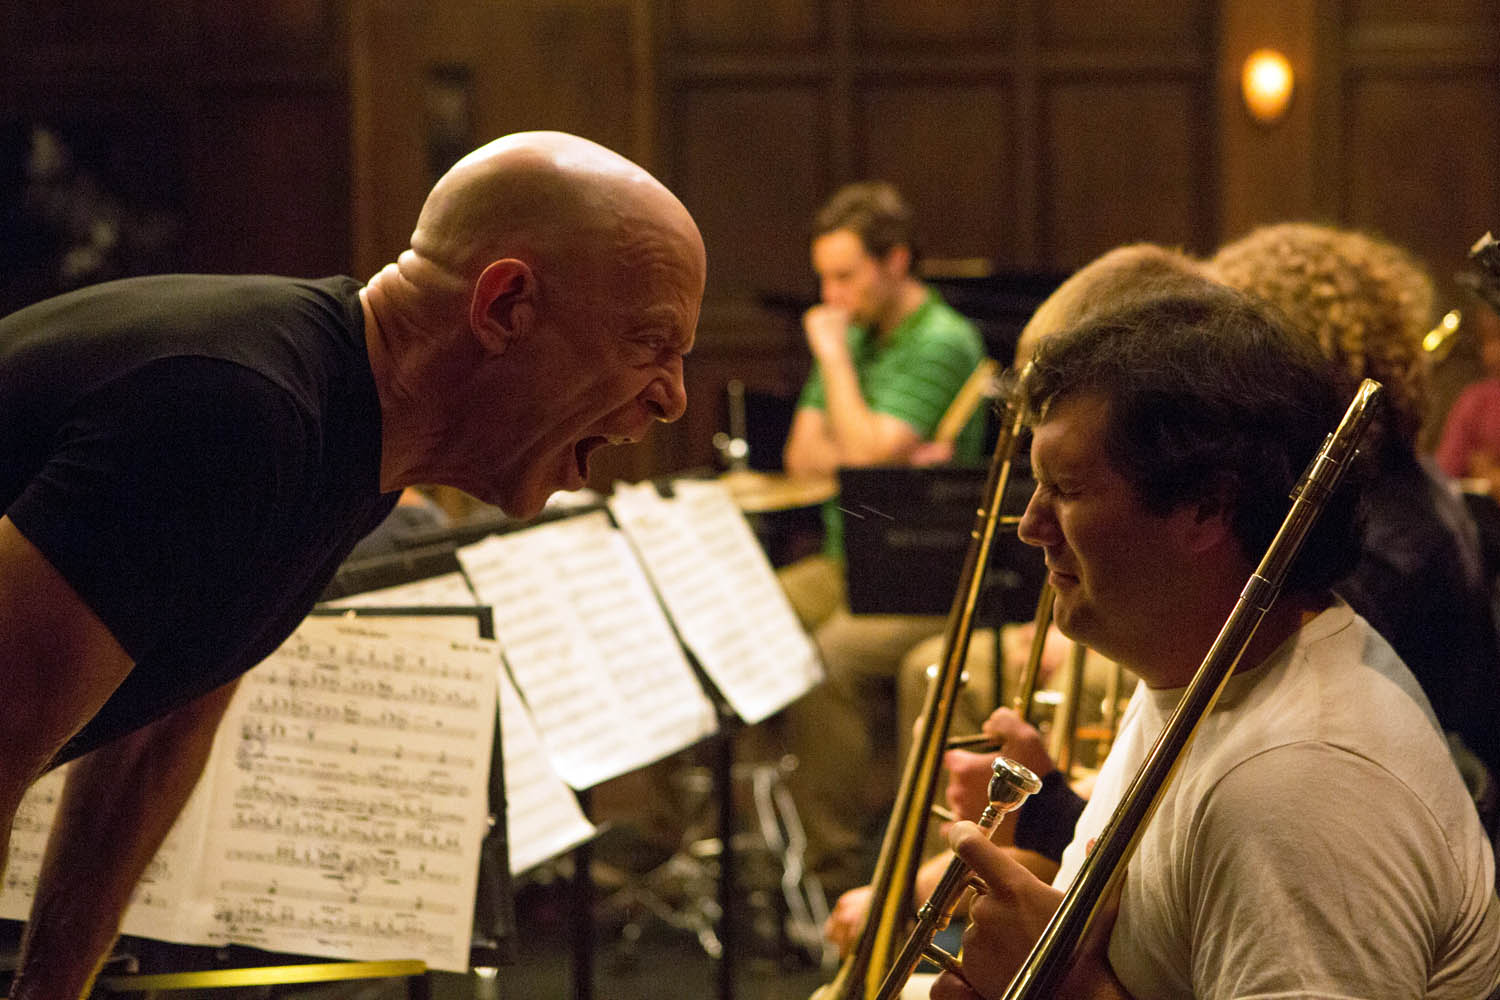 WHIPLASH - 2014 FILM STILL - JK Simmons as Fletcher - Photo Credit: Photo Credit: Daniel McFadden Courtesy of Sony Pictures Classics